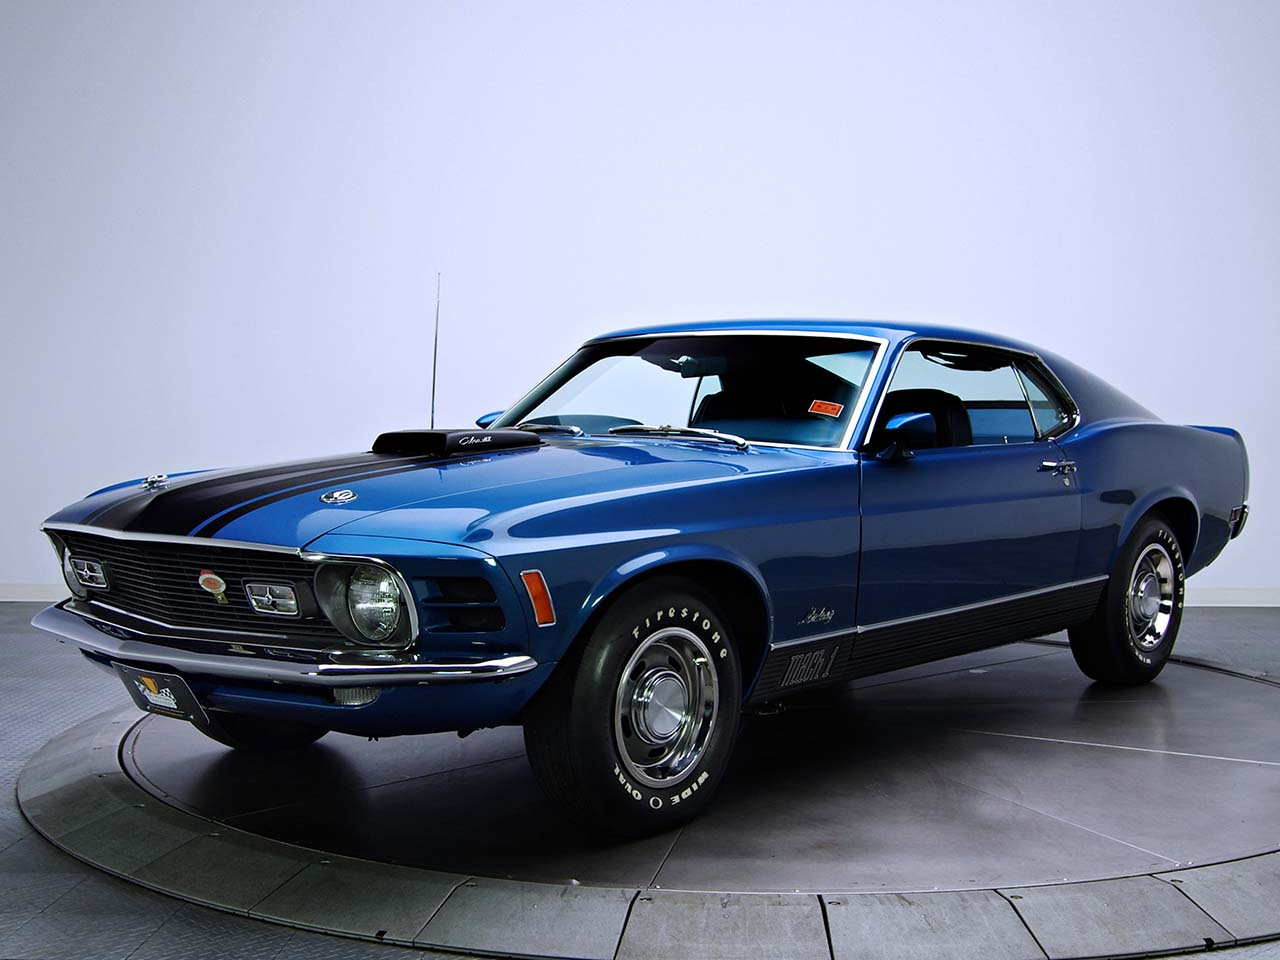 Classic Badass Muscle Cars That Will Never Get Old Greenide - Old classic cars